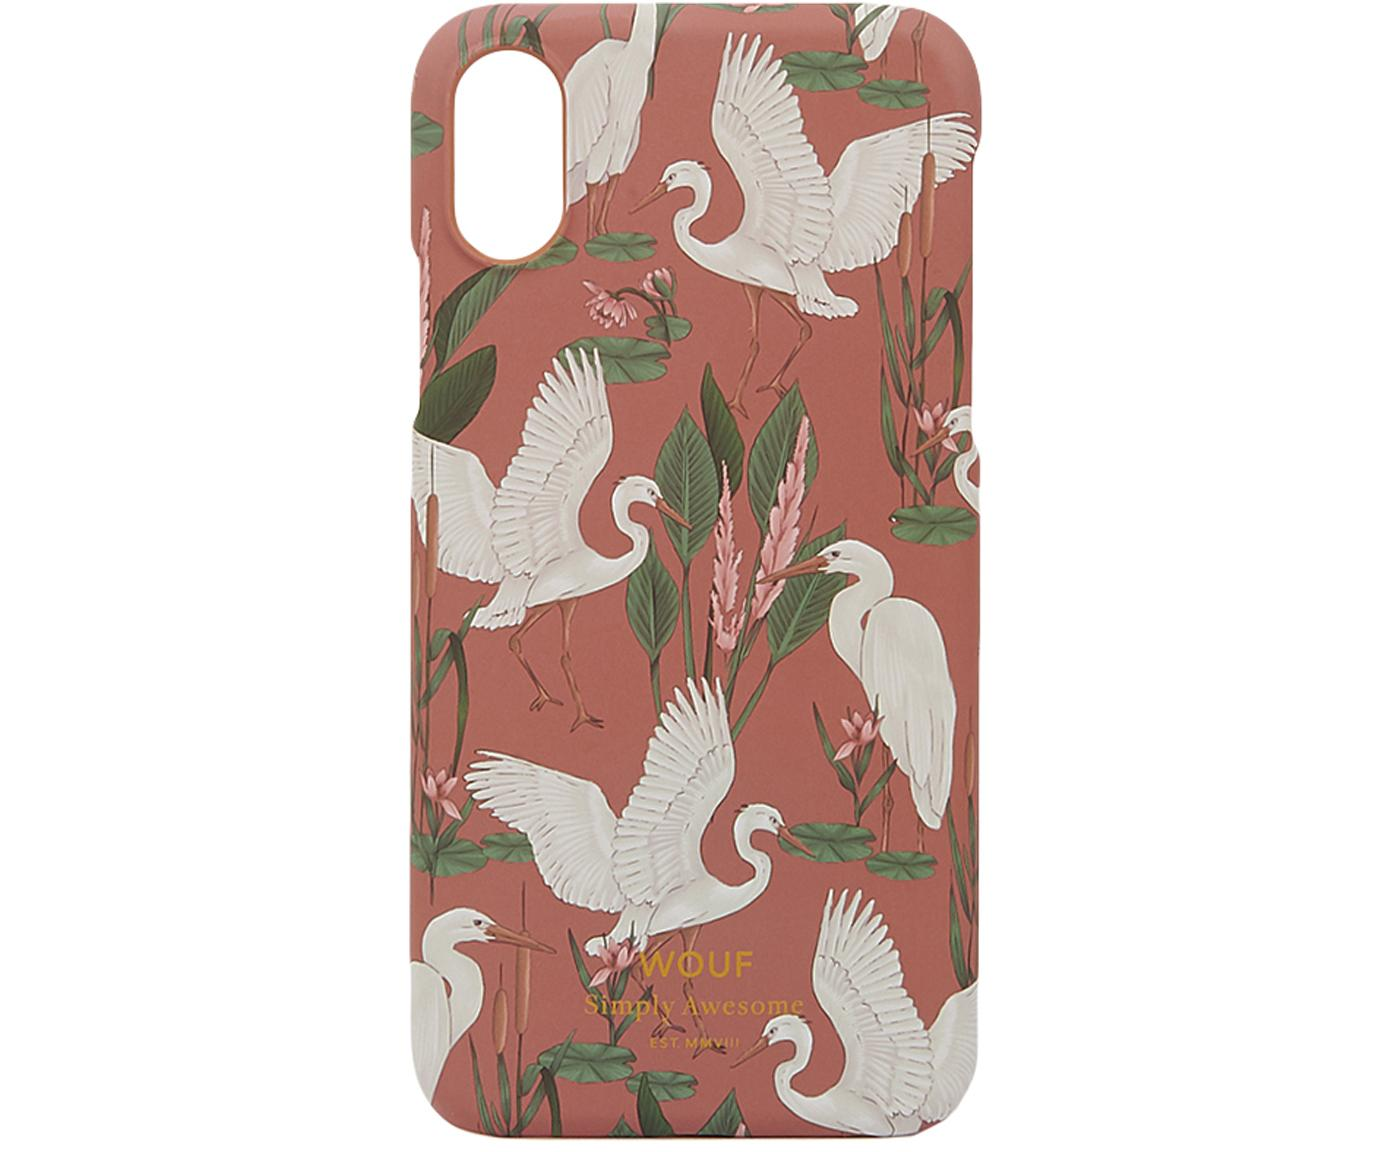 Telefoonhoesje Royal Forest voor iPhone X, Siliconen, Multicolour, 7 x 15 cm